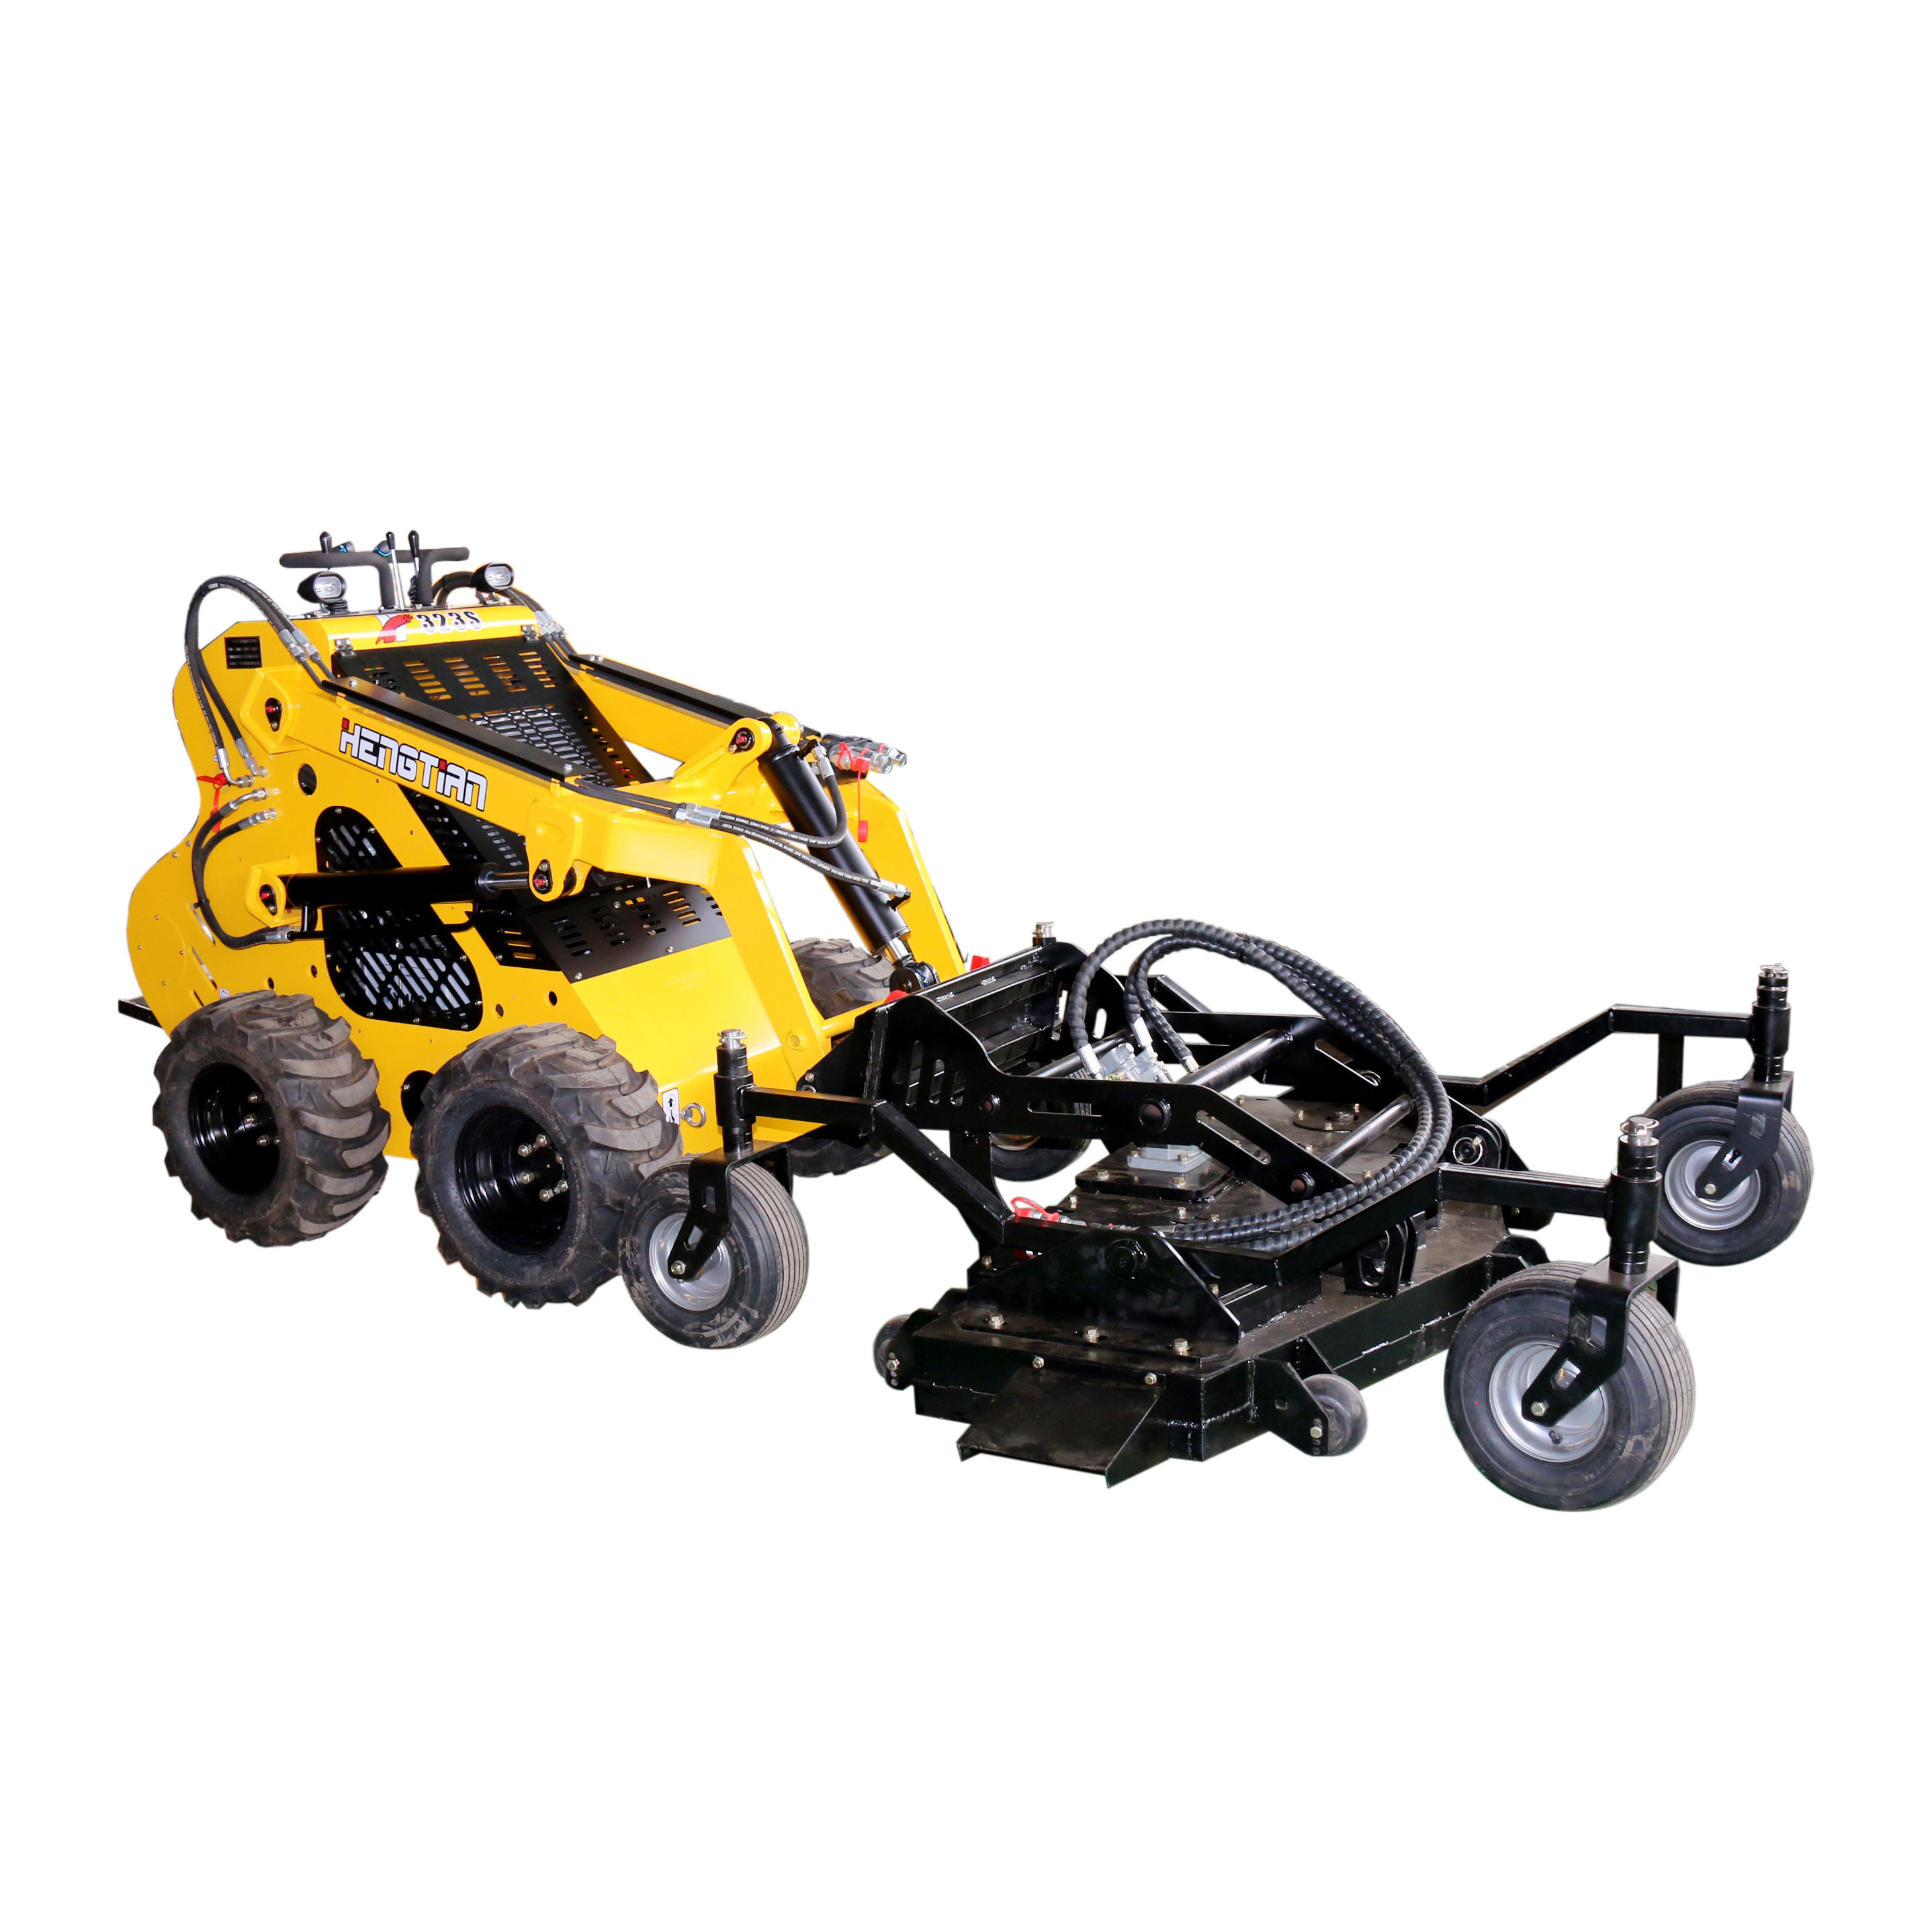 small garden tools mini skid steer garden loader with lawn mower for sale brush cutter